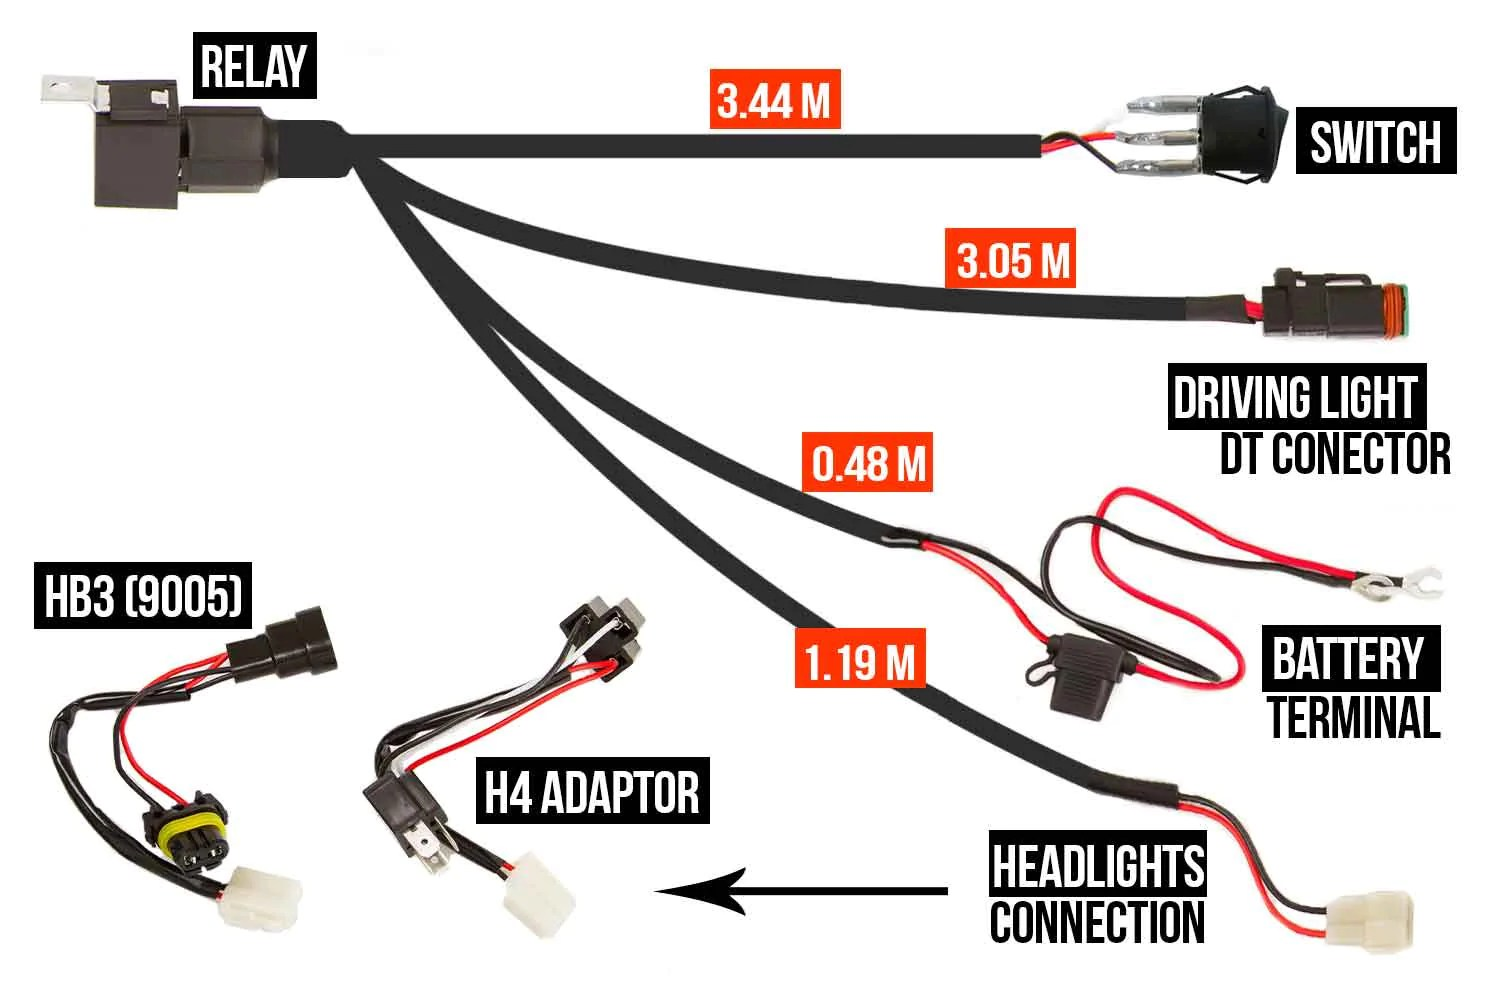 discovery 2 headlight wiring diagram rheem water heater h4 hb3 harness for led driving lights gemtek